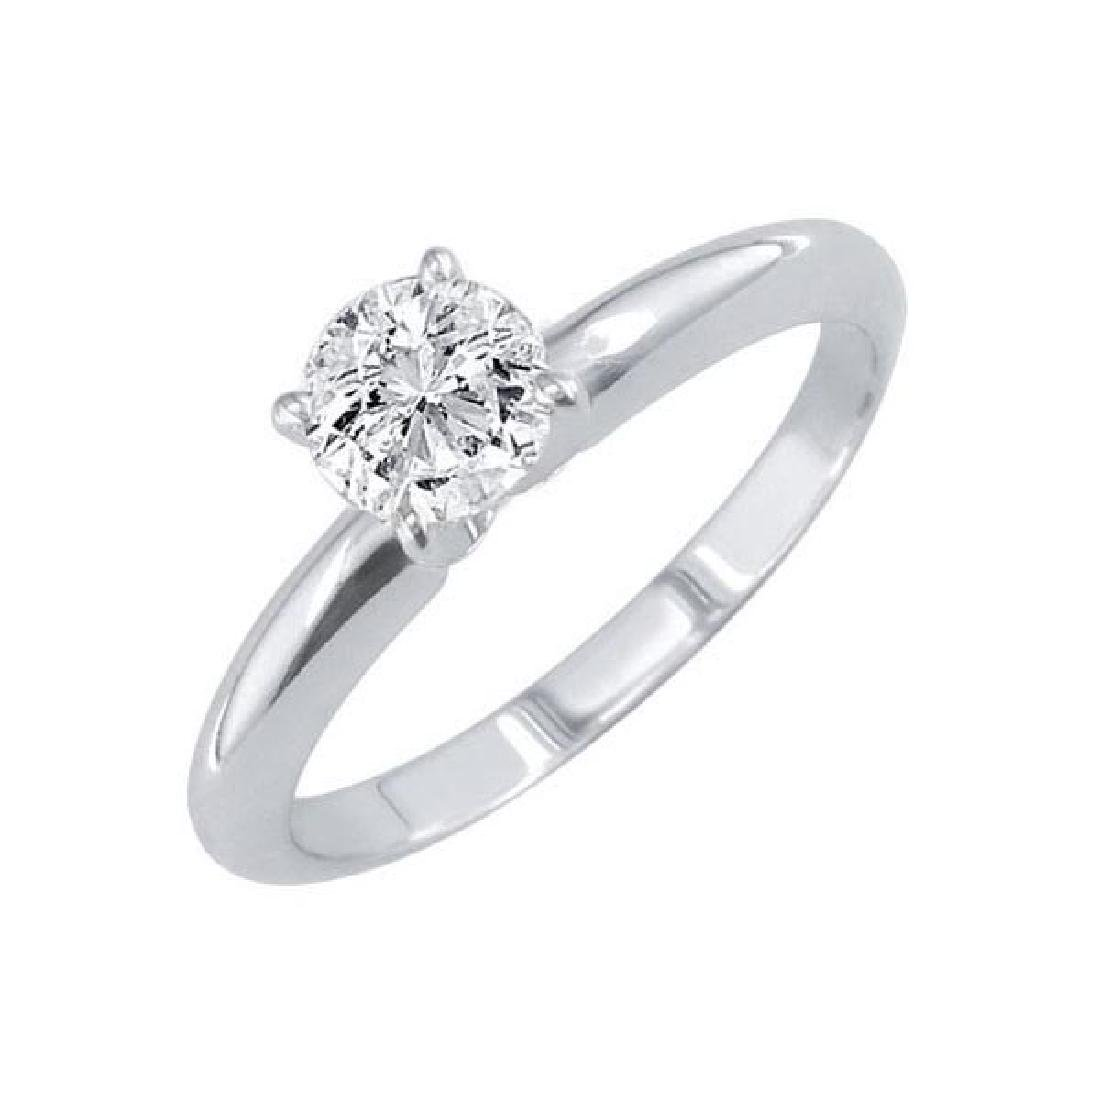 Certified 0.9 CTW Round Diamond Solitaire 14k Ring J/SI